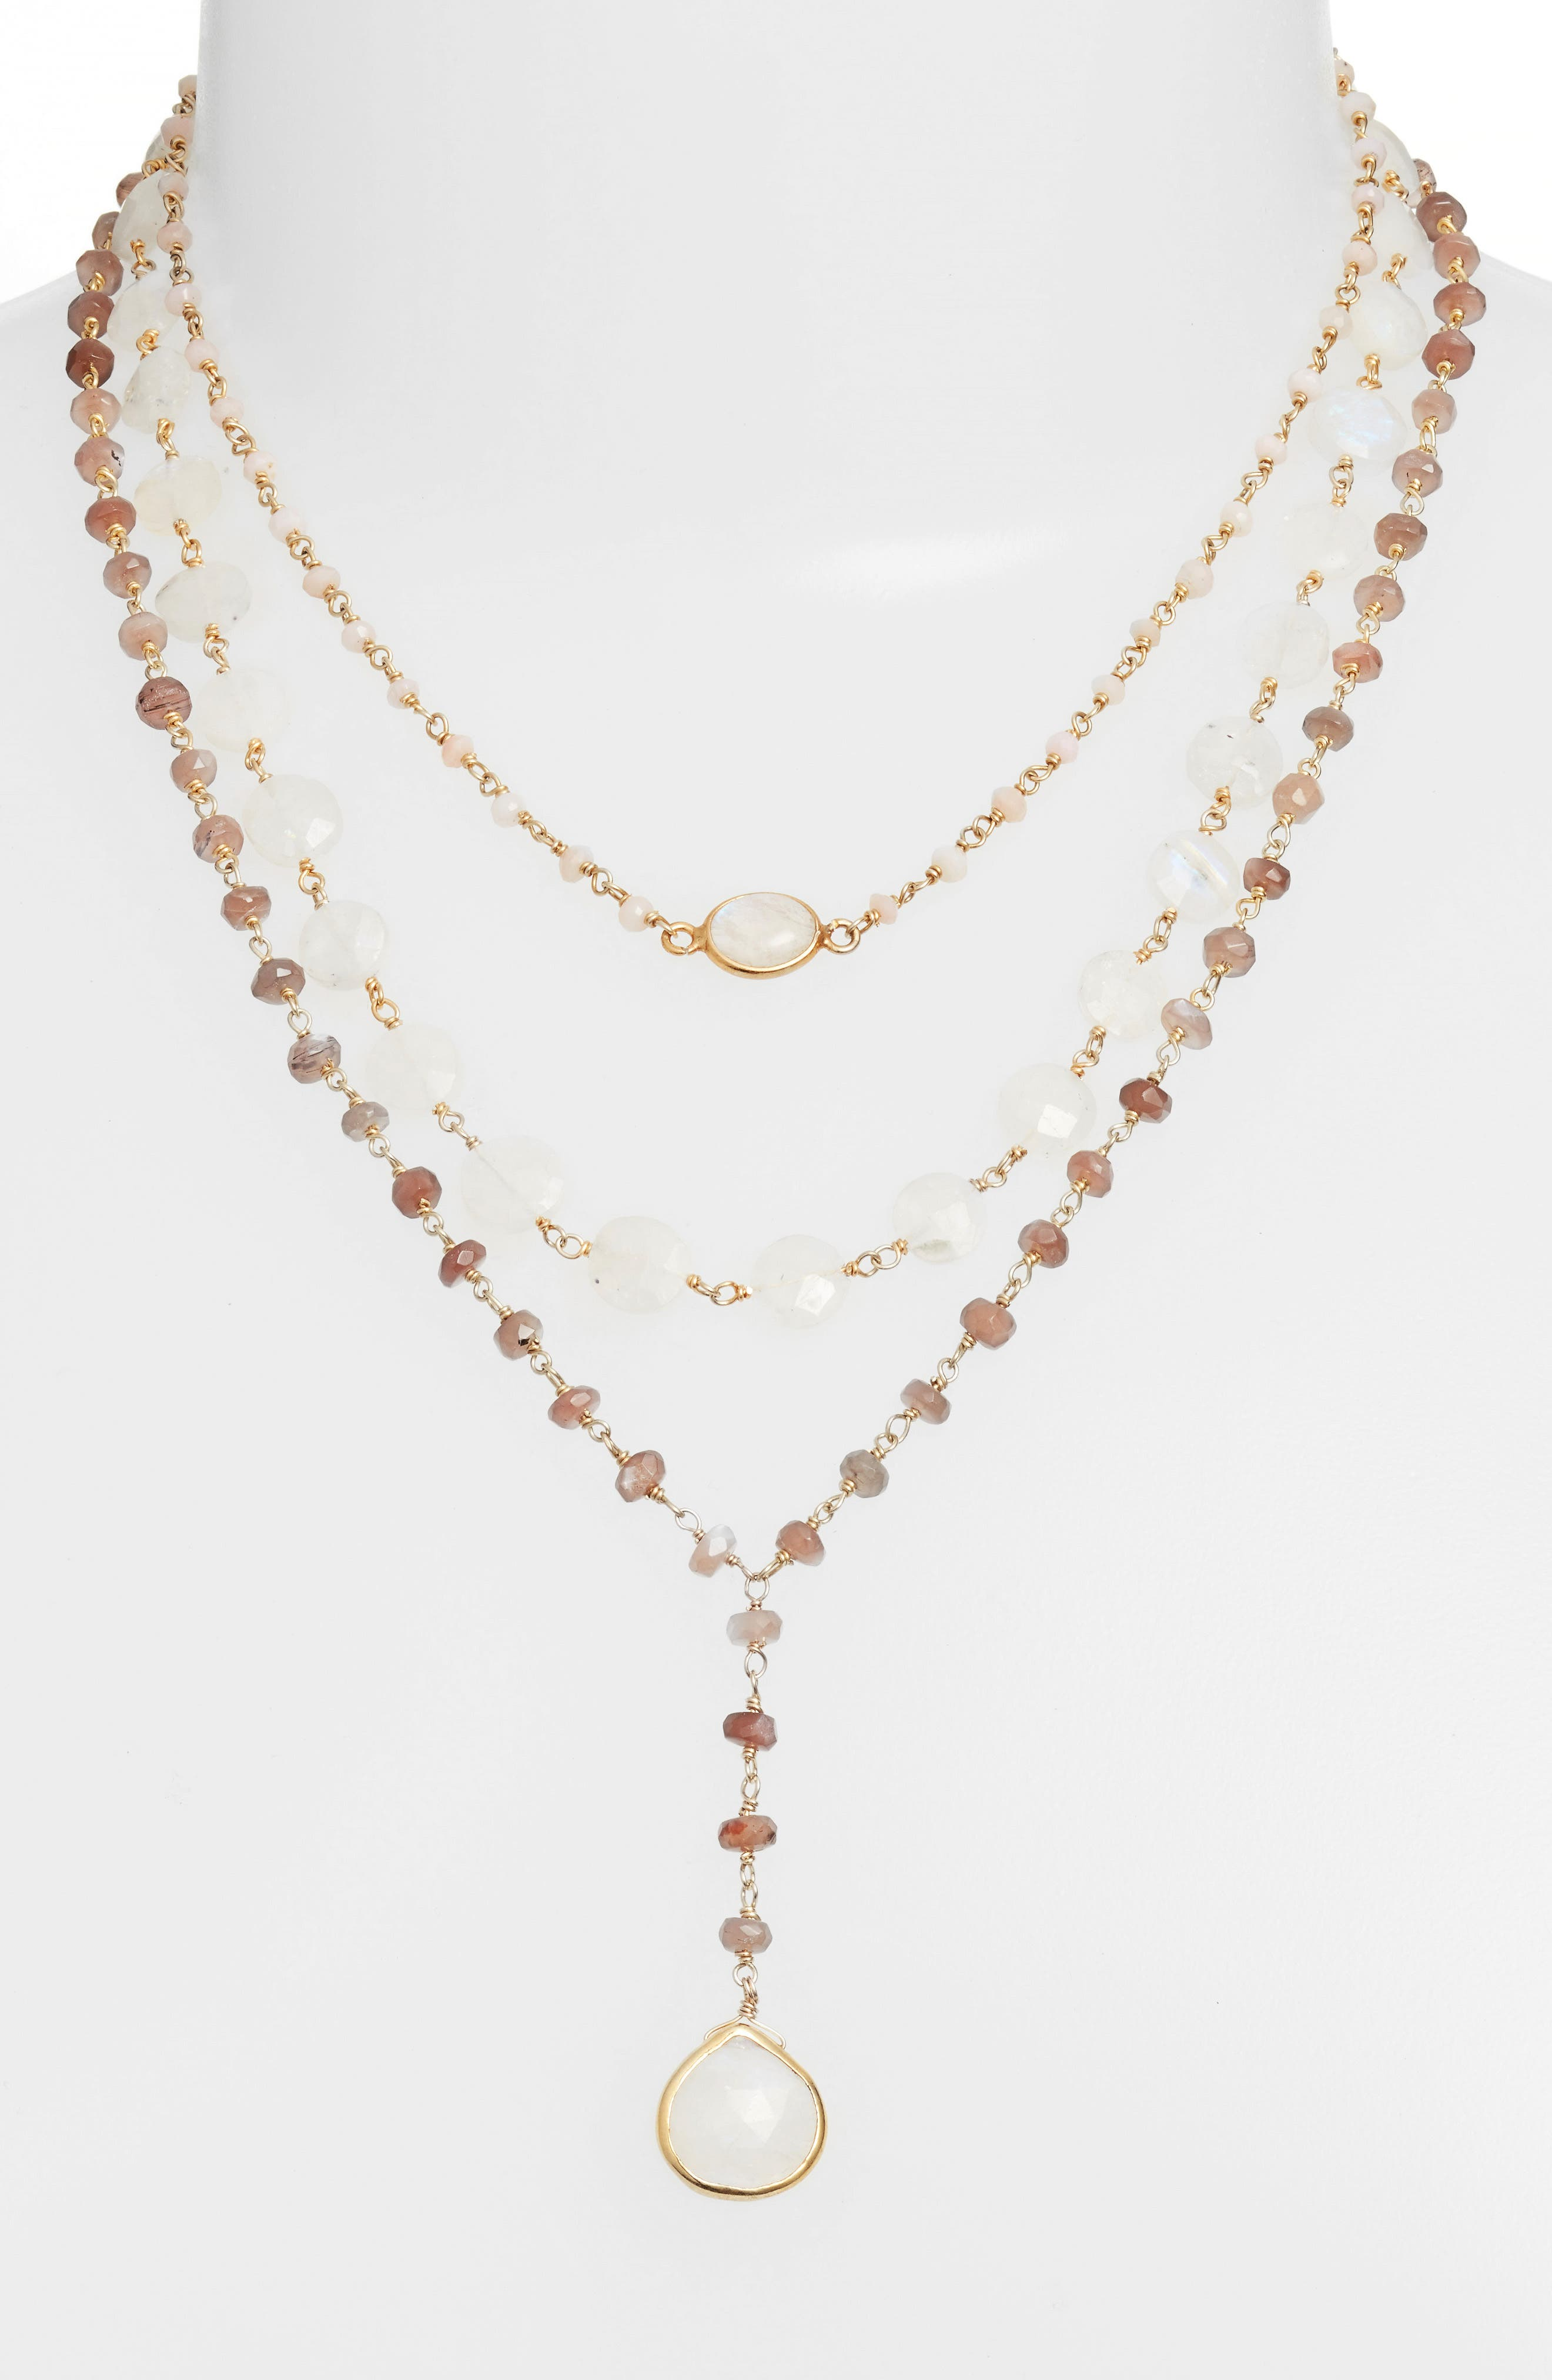 Multistrand Y-Necklace,                             Alternate thumbnail 2, color,                             PINK OPAL/ BROWN MOONSTONE